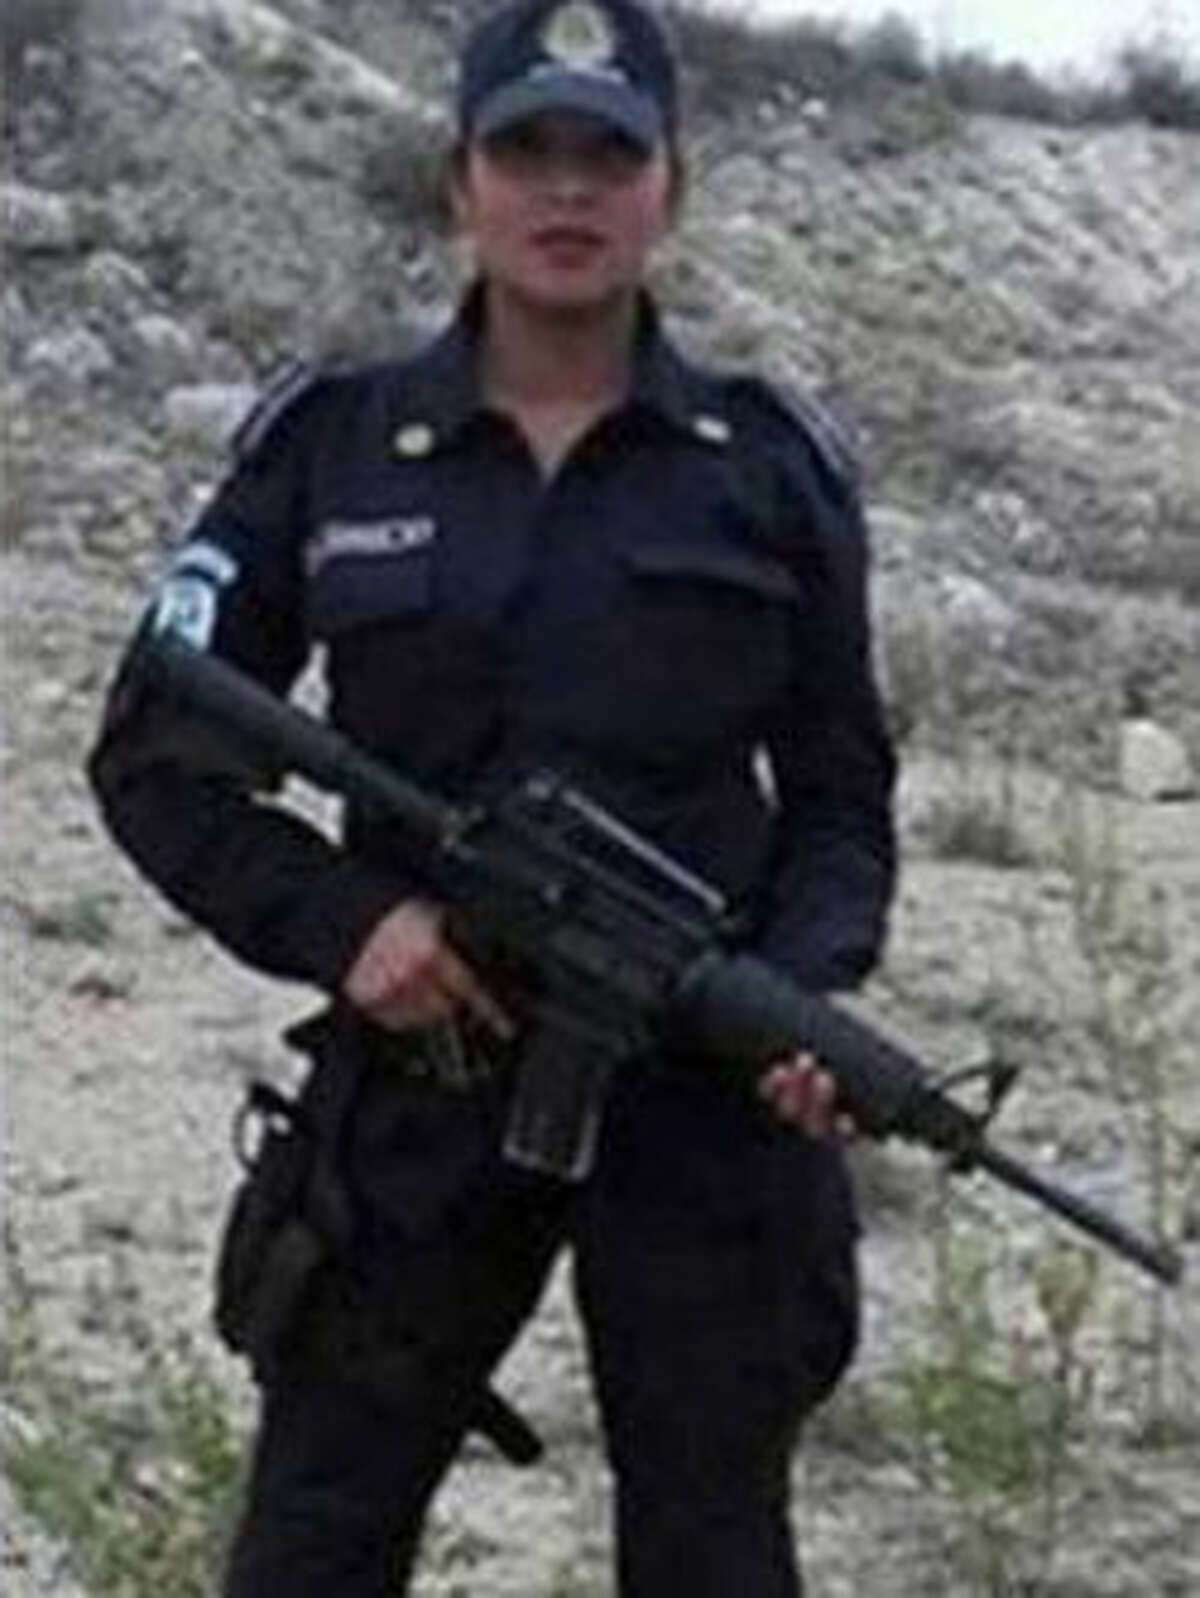 Police Officer Arrested For Posting Nude Photos Of Wife